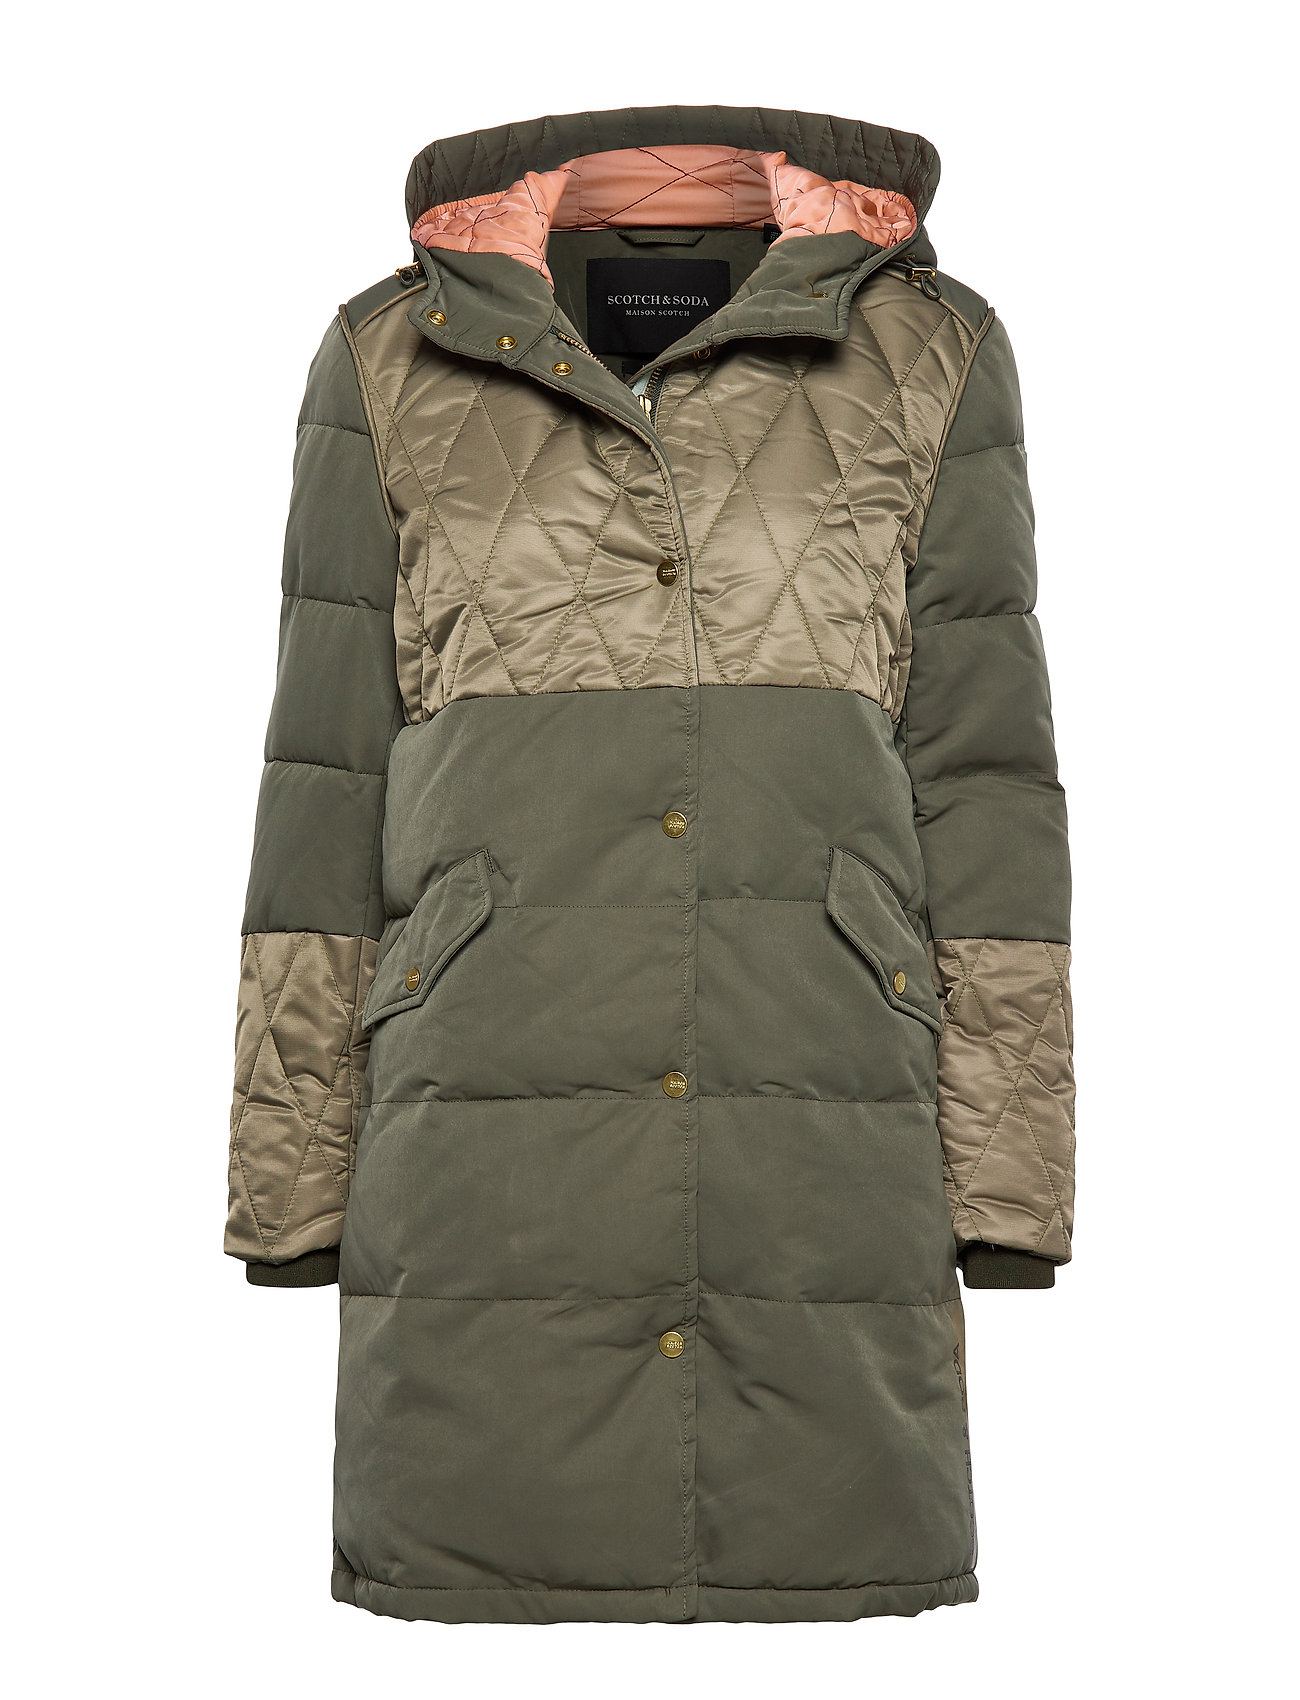 Scotch & Soda Mixed fabric parka jacket with quilting details - MILITARY